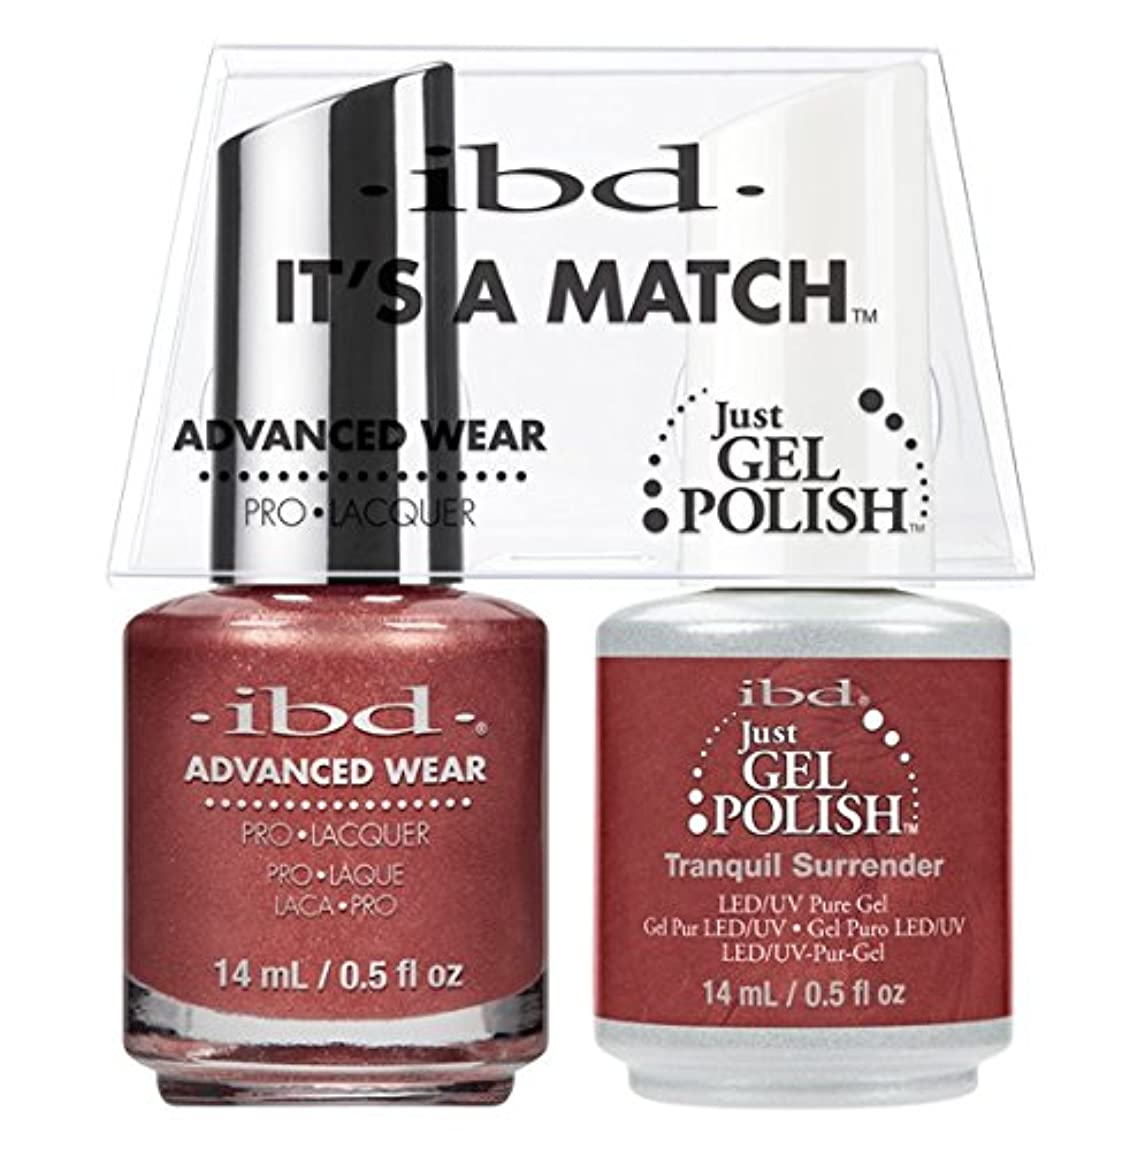 評論家ドナーダンスibd - It's A Match -Duo Pack- Tranquil Surrender - 14 mL / 0.5 oz Each